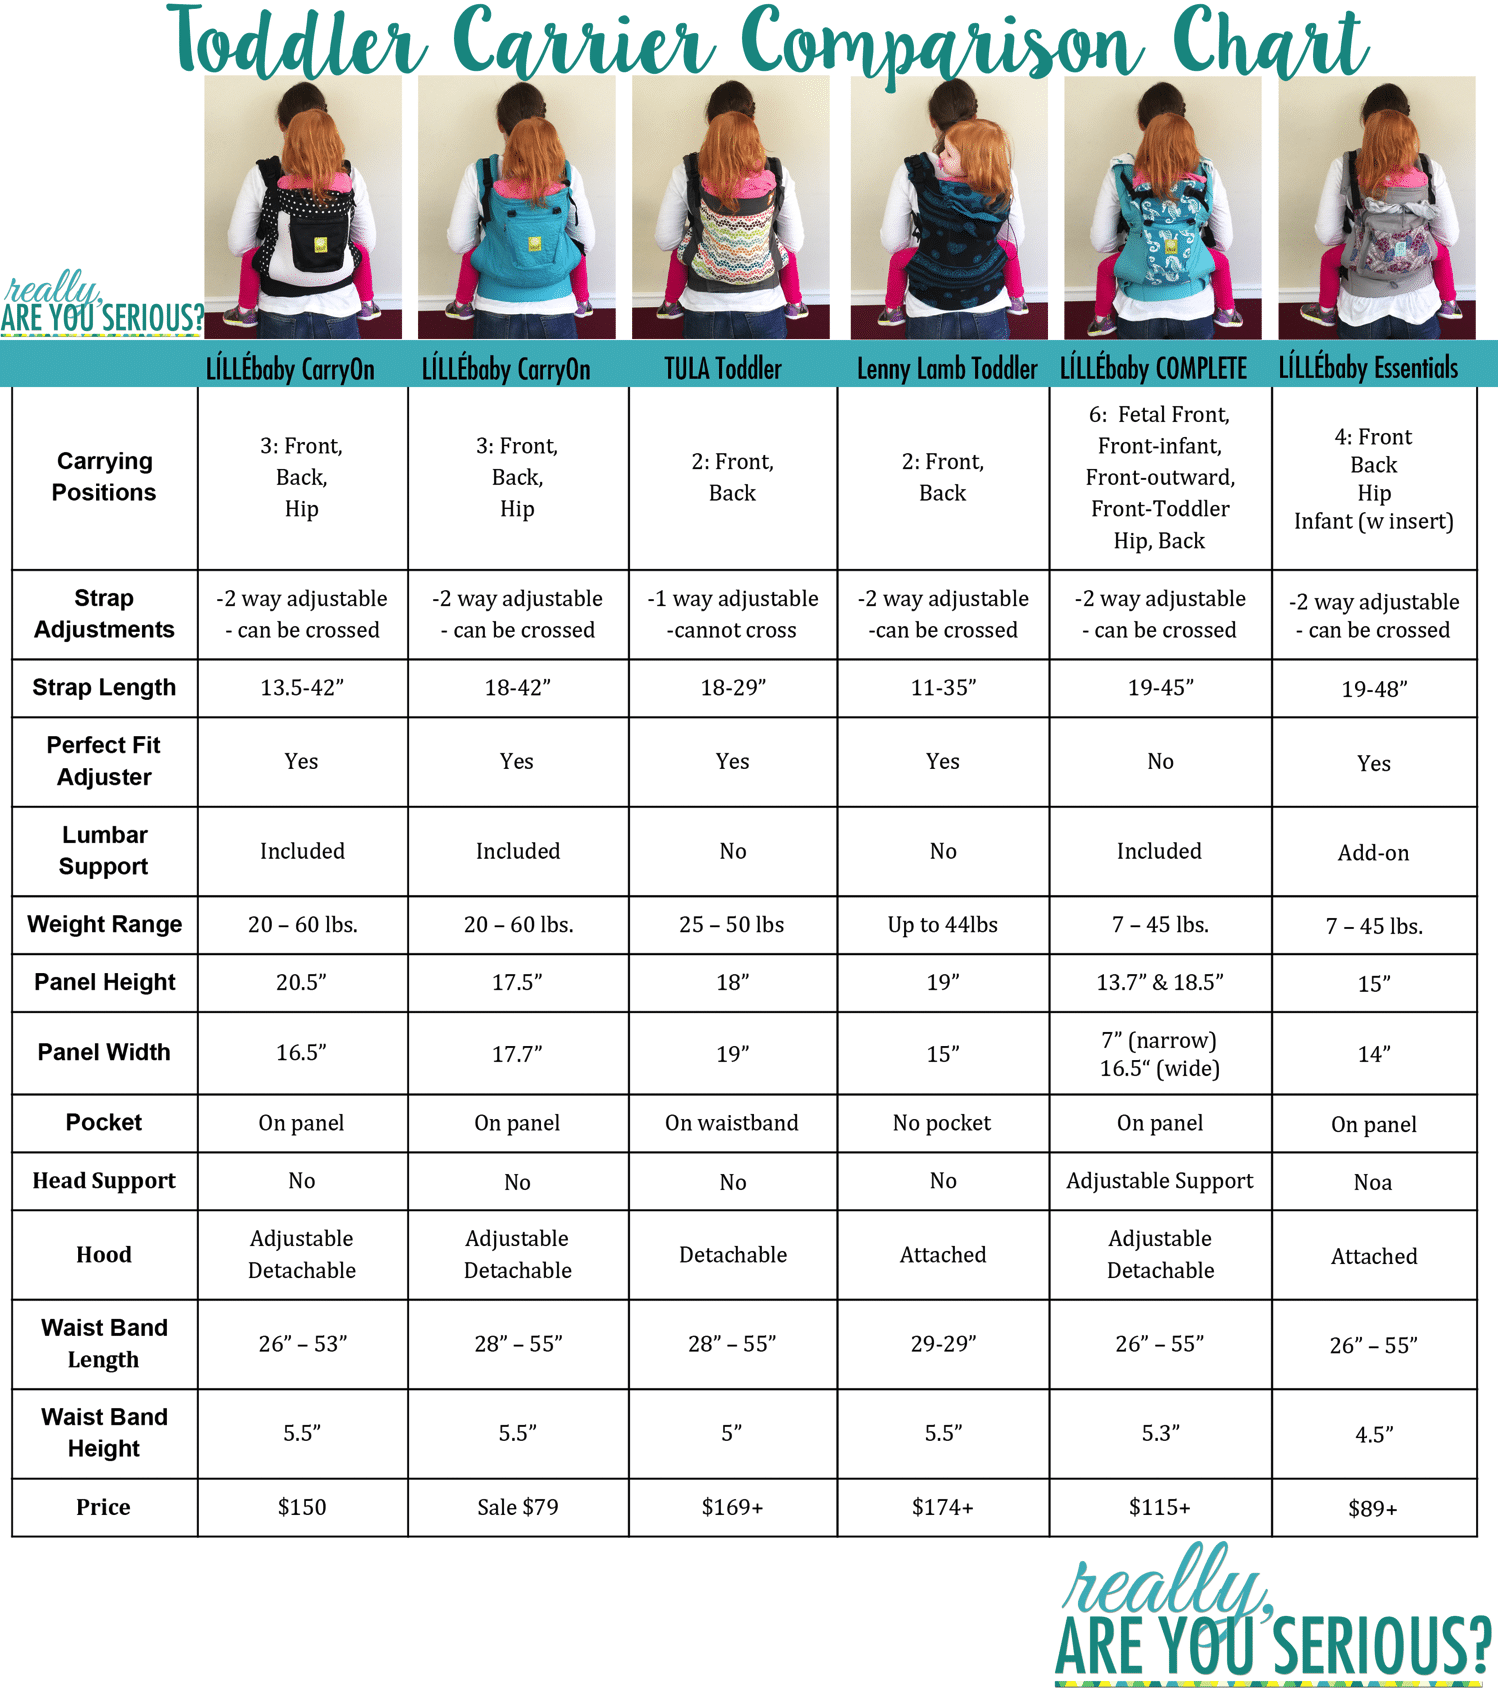 Toddler in carrier comparison with chart